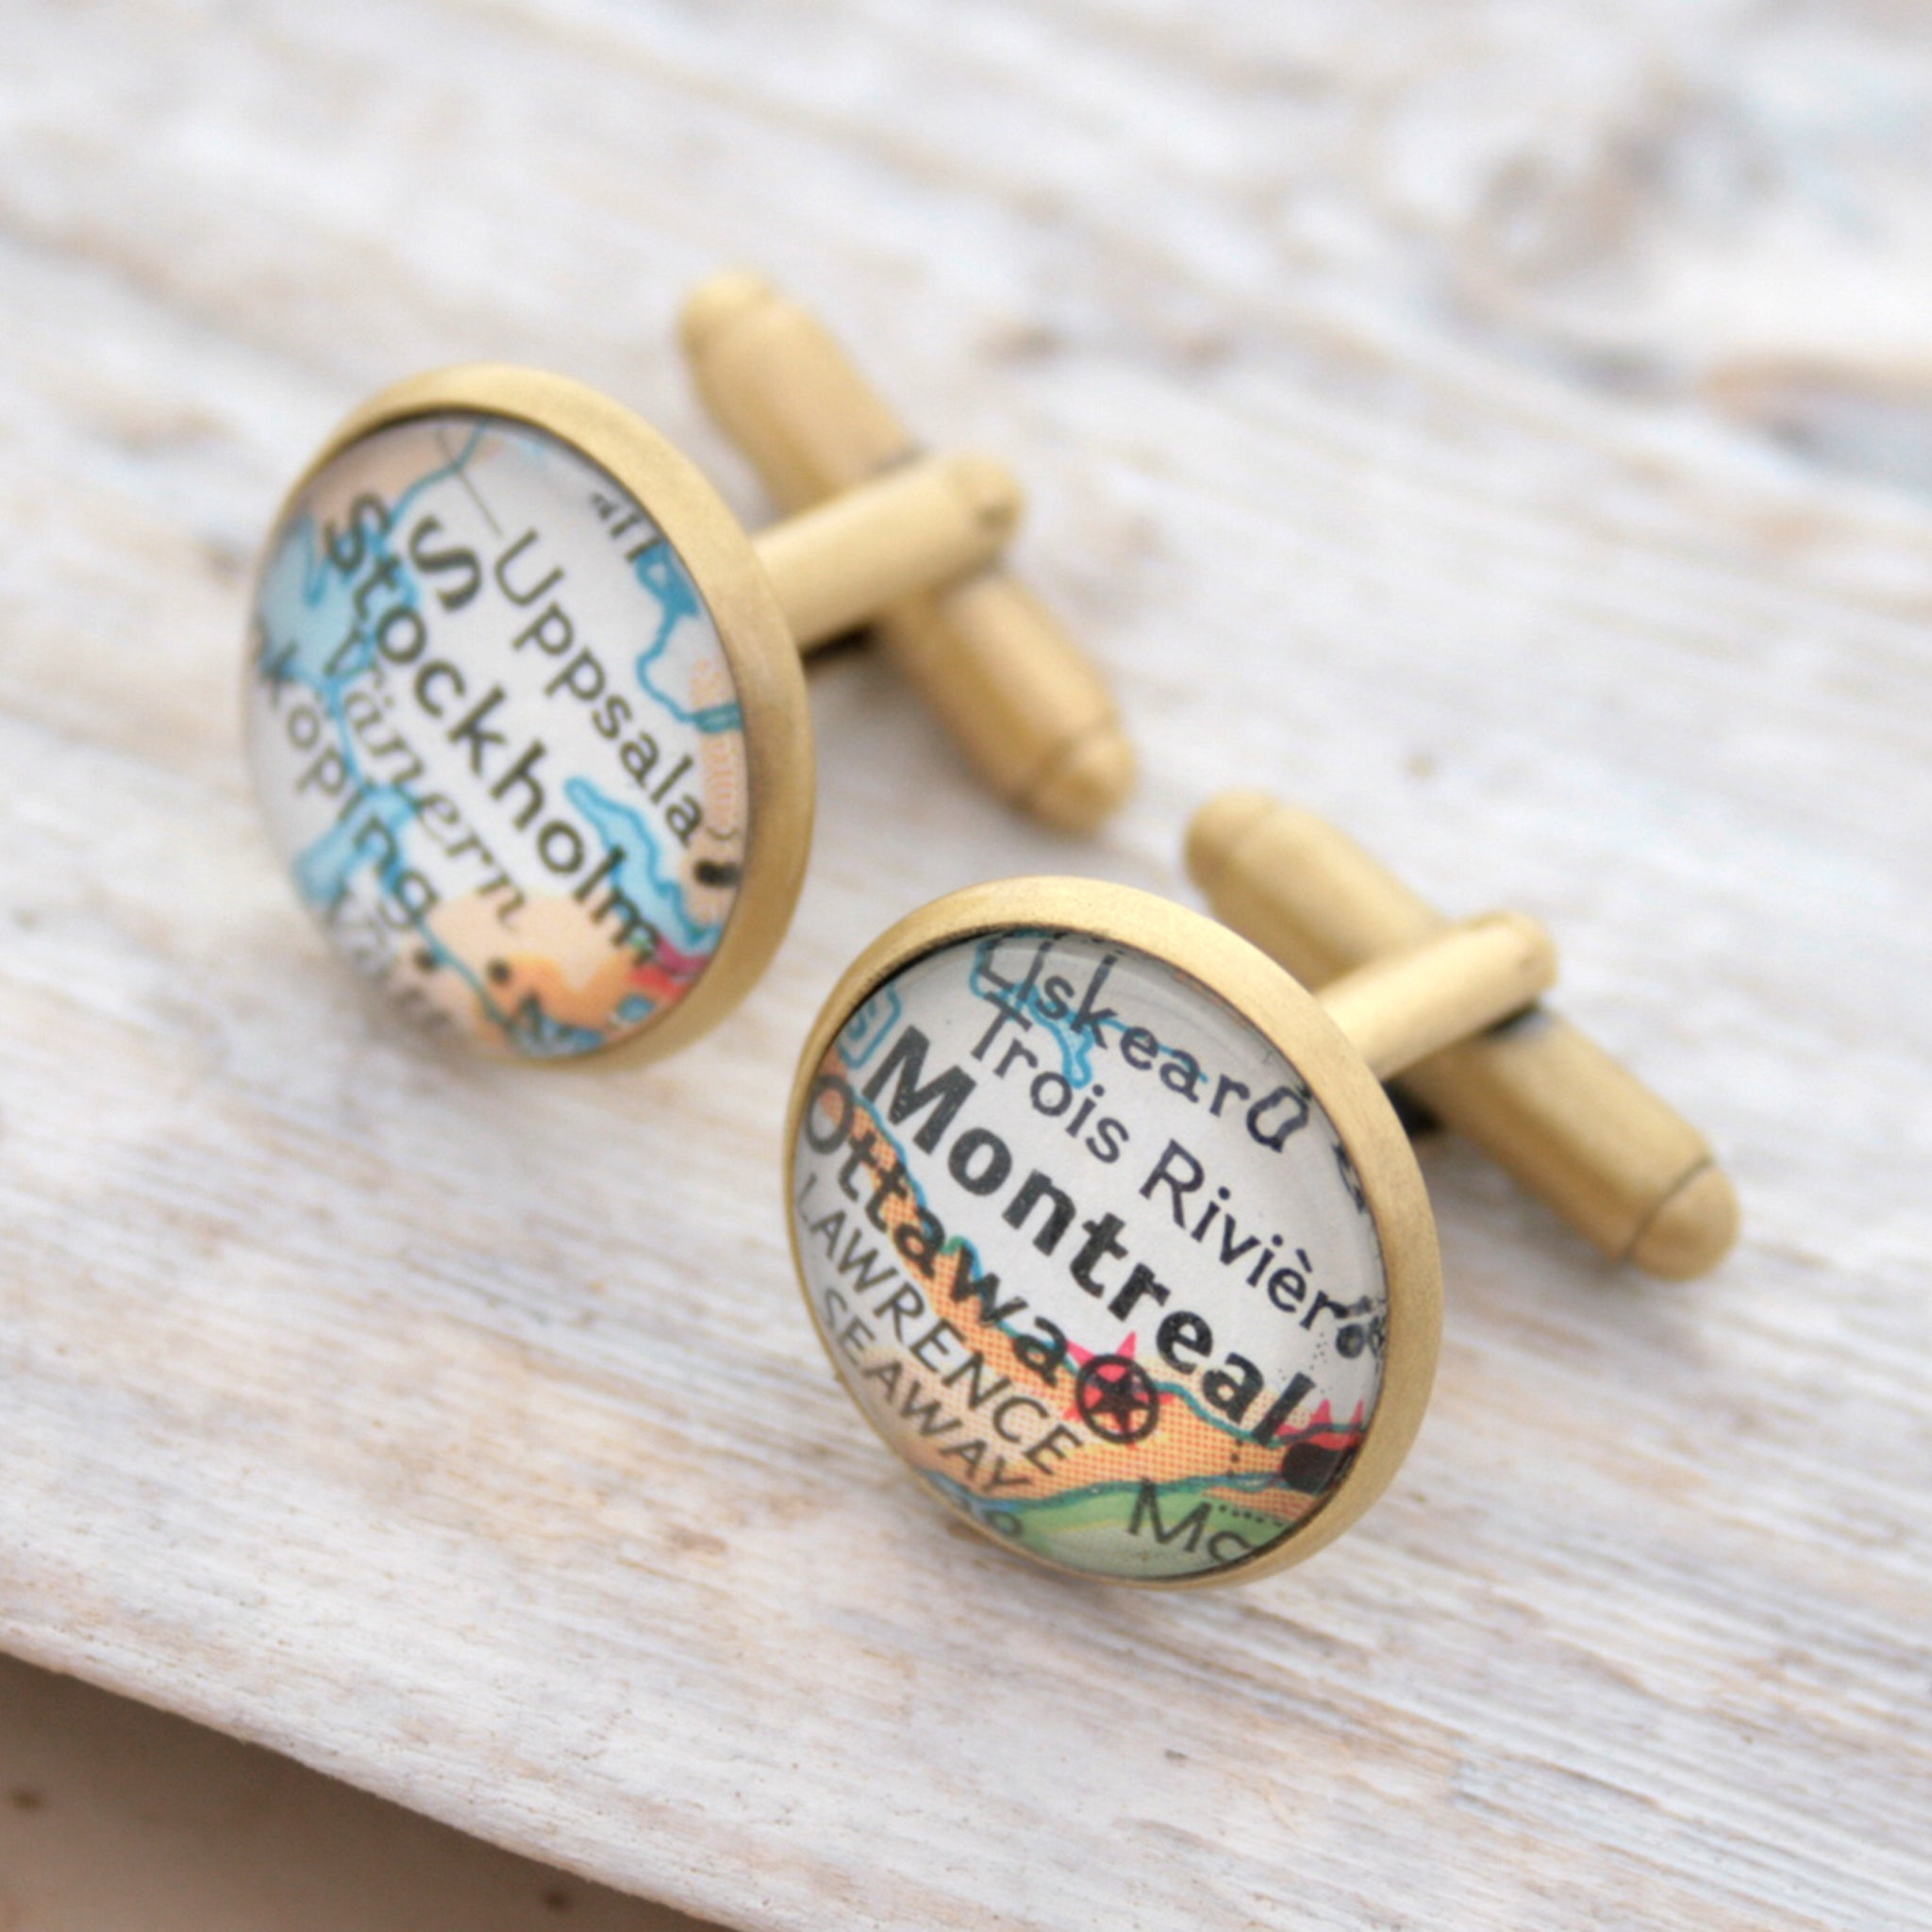 Personalised map cufflinks in brushed bronze color featuring maps of Stockholm and Montreal